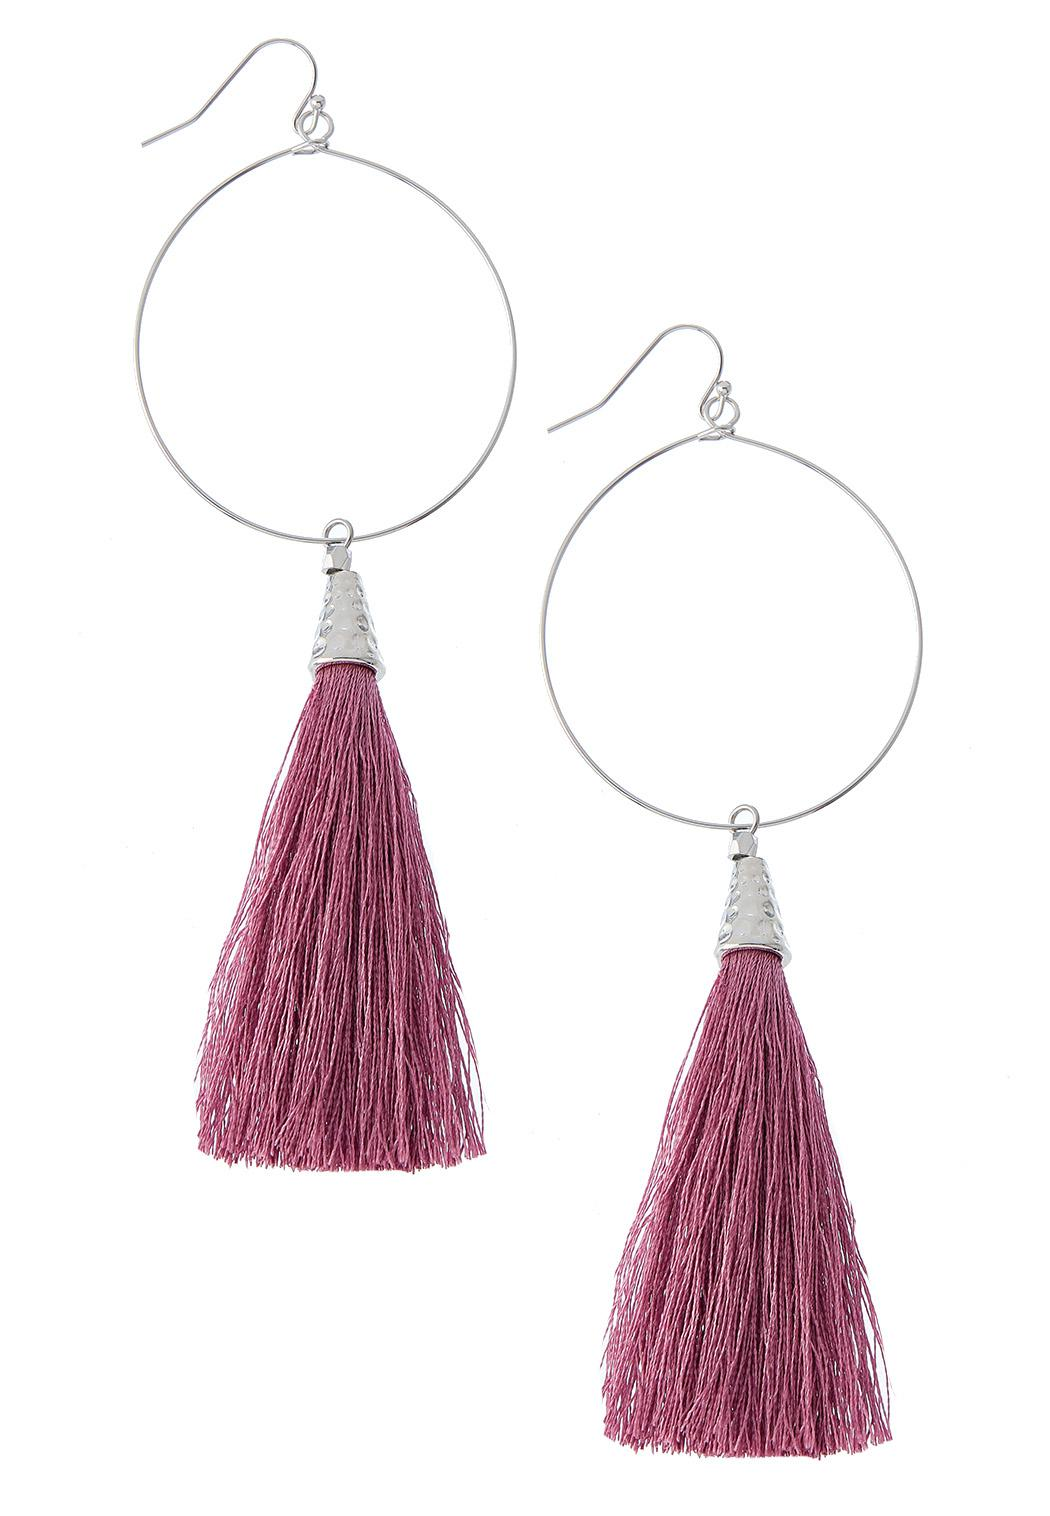 Mod Tassel Earrings